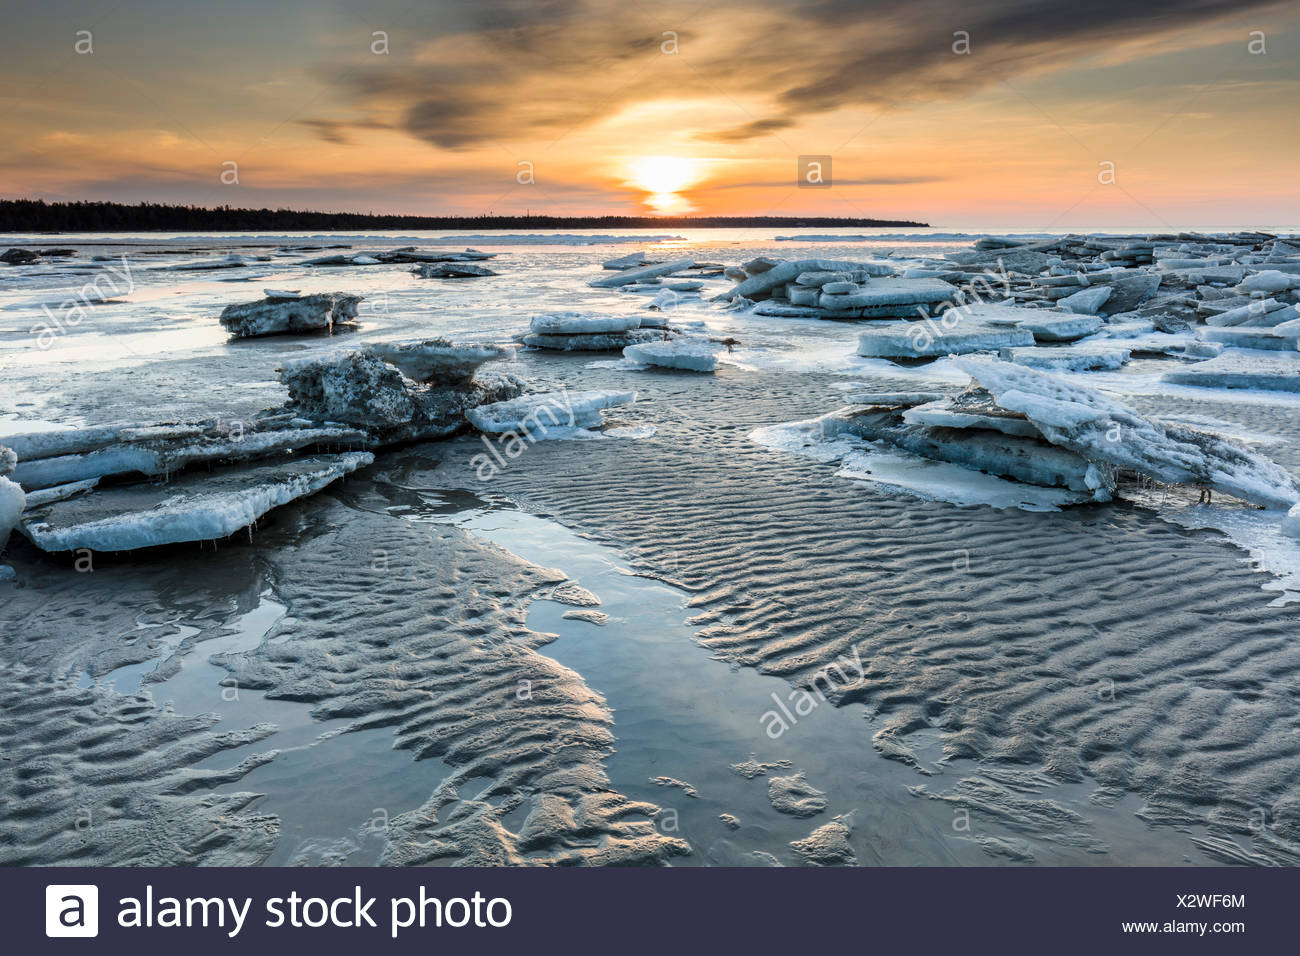 Melting ice on Singing Sands Beach at Dorcas Bay in Bruce Peninsula National Park, Ontario, Canada - Stock Image